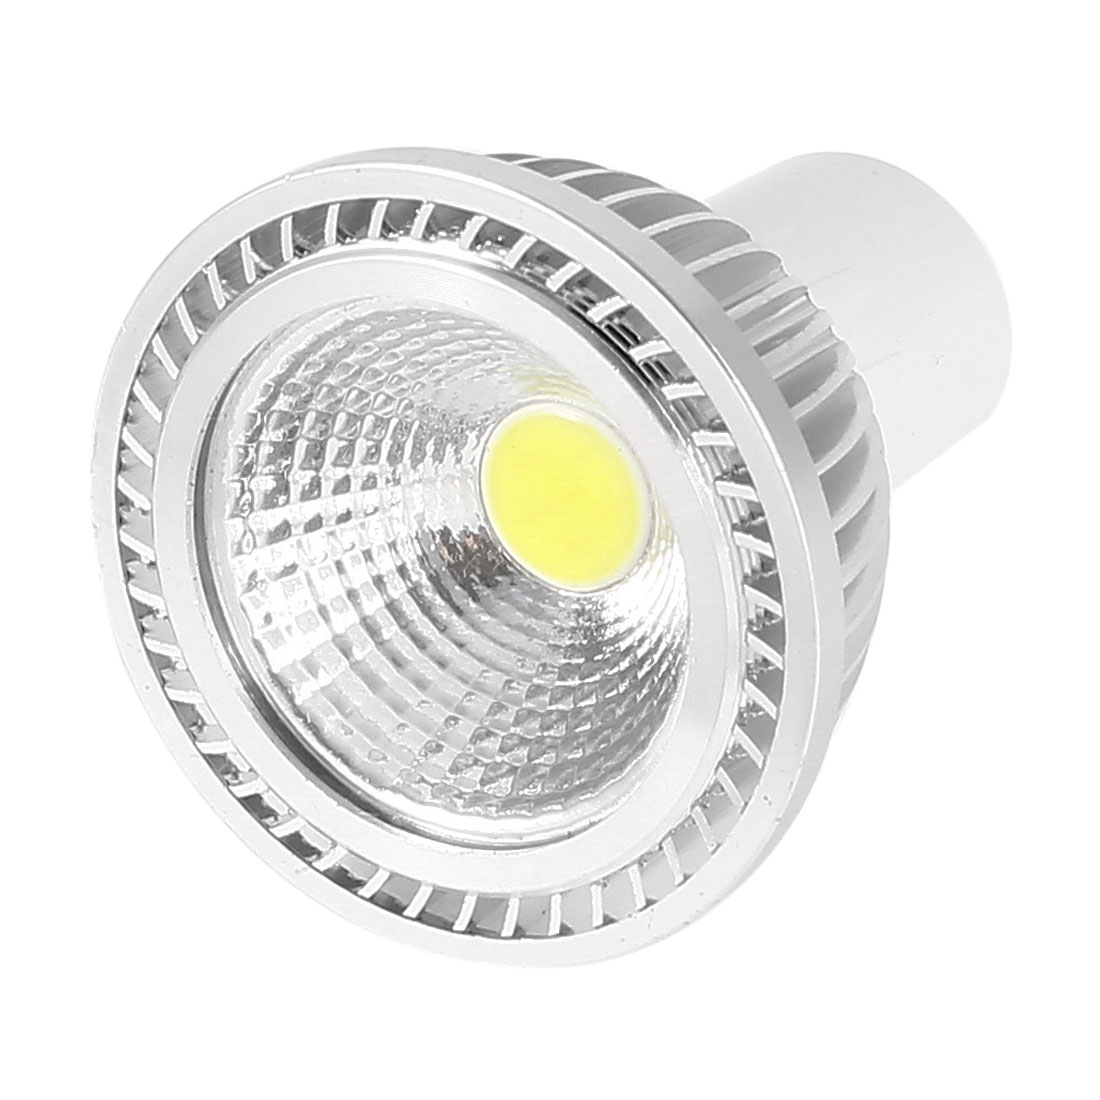 AC 85-265V GU10 3W White LED Light Energy Saving Ceiling COB Spotlight Bulb